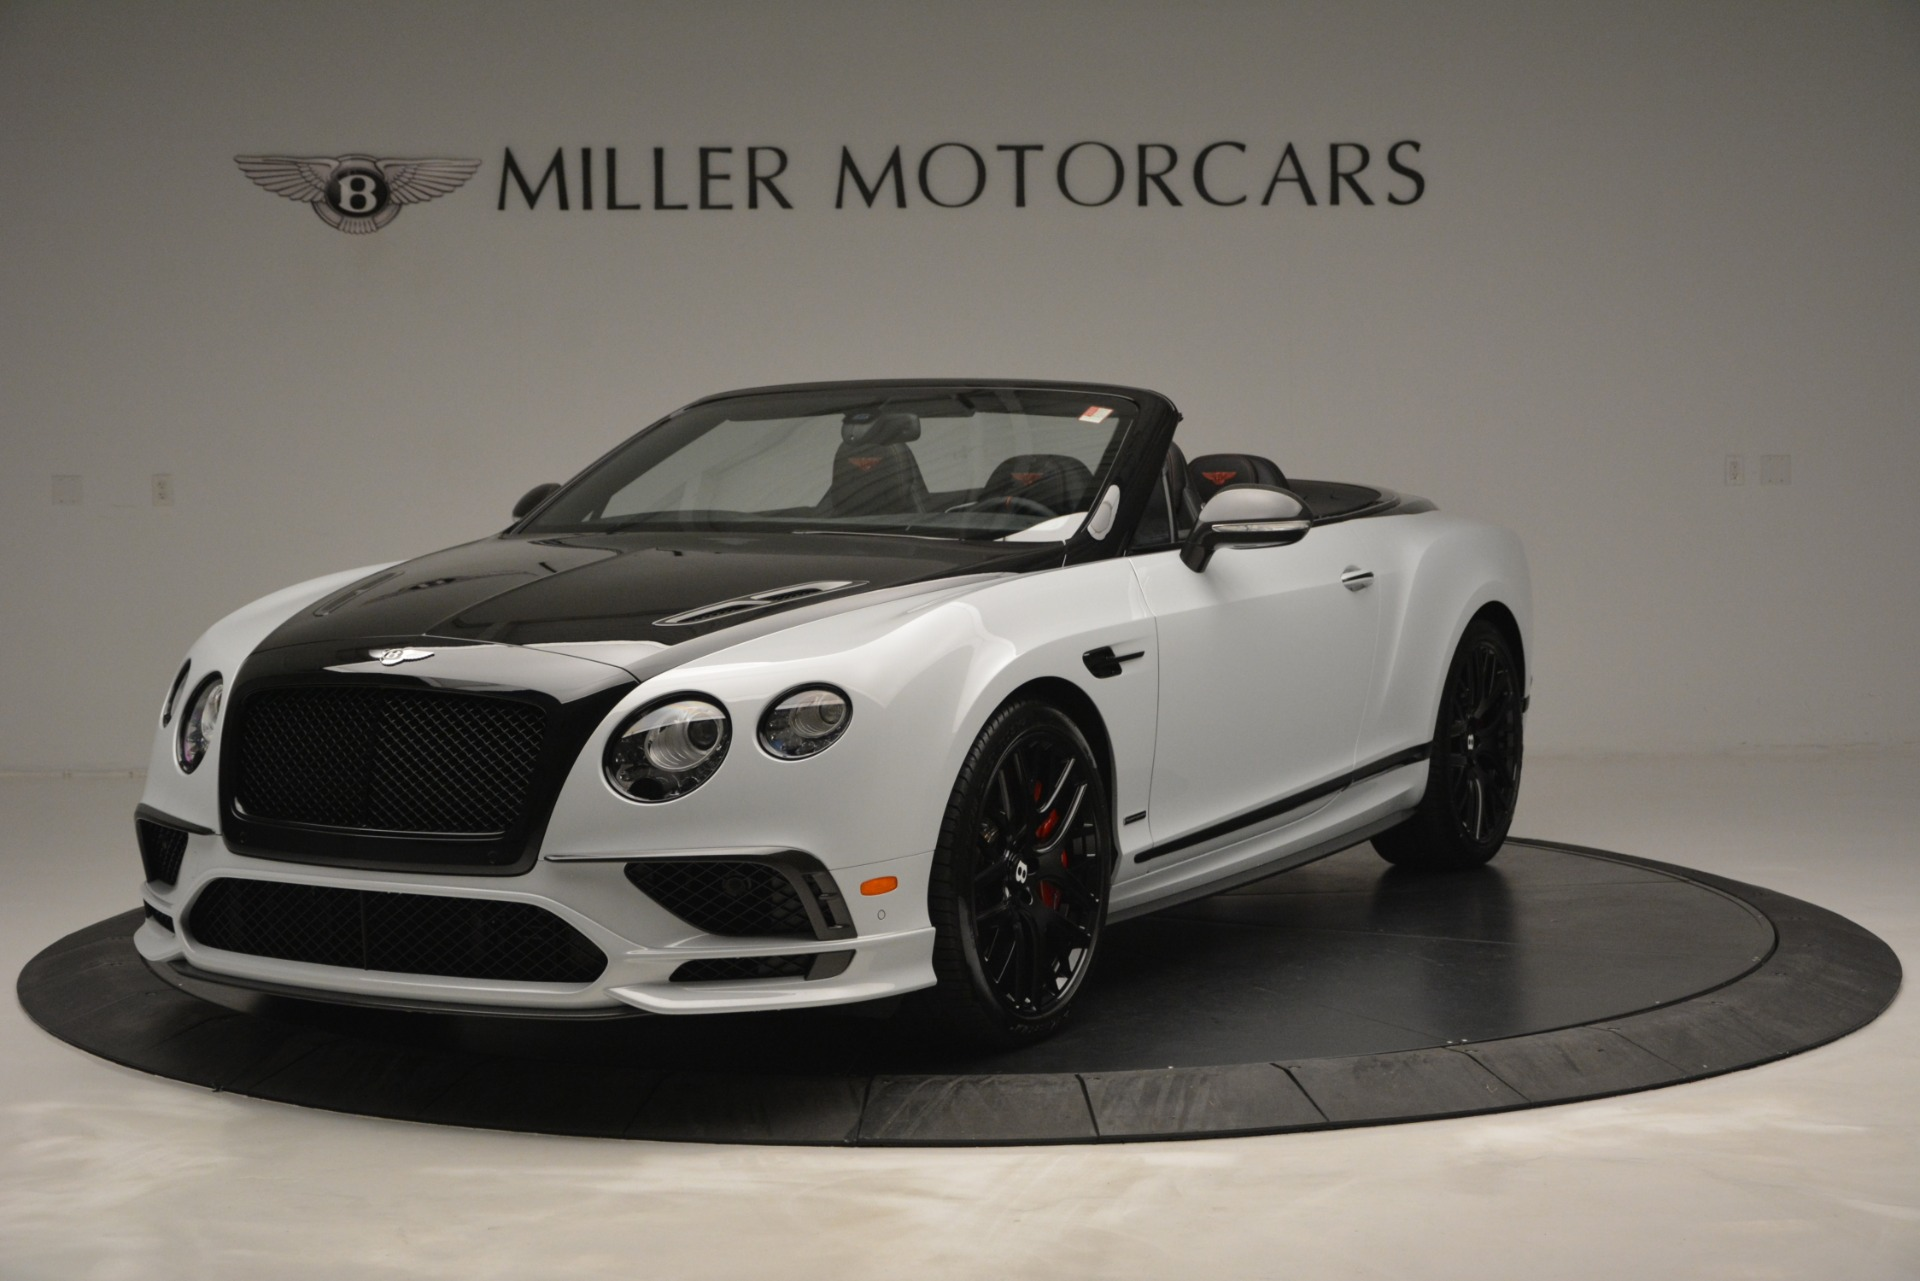 New 2018 Bentley Continental GT Supersports Convertible for sale Sold at Bentley Greenwich in Greenwich CT 06830 1